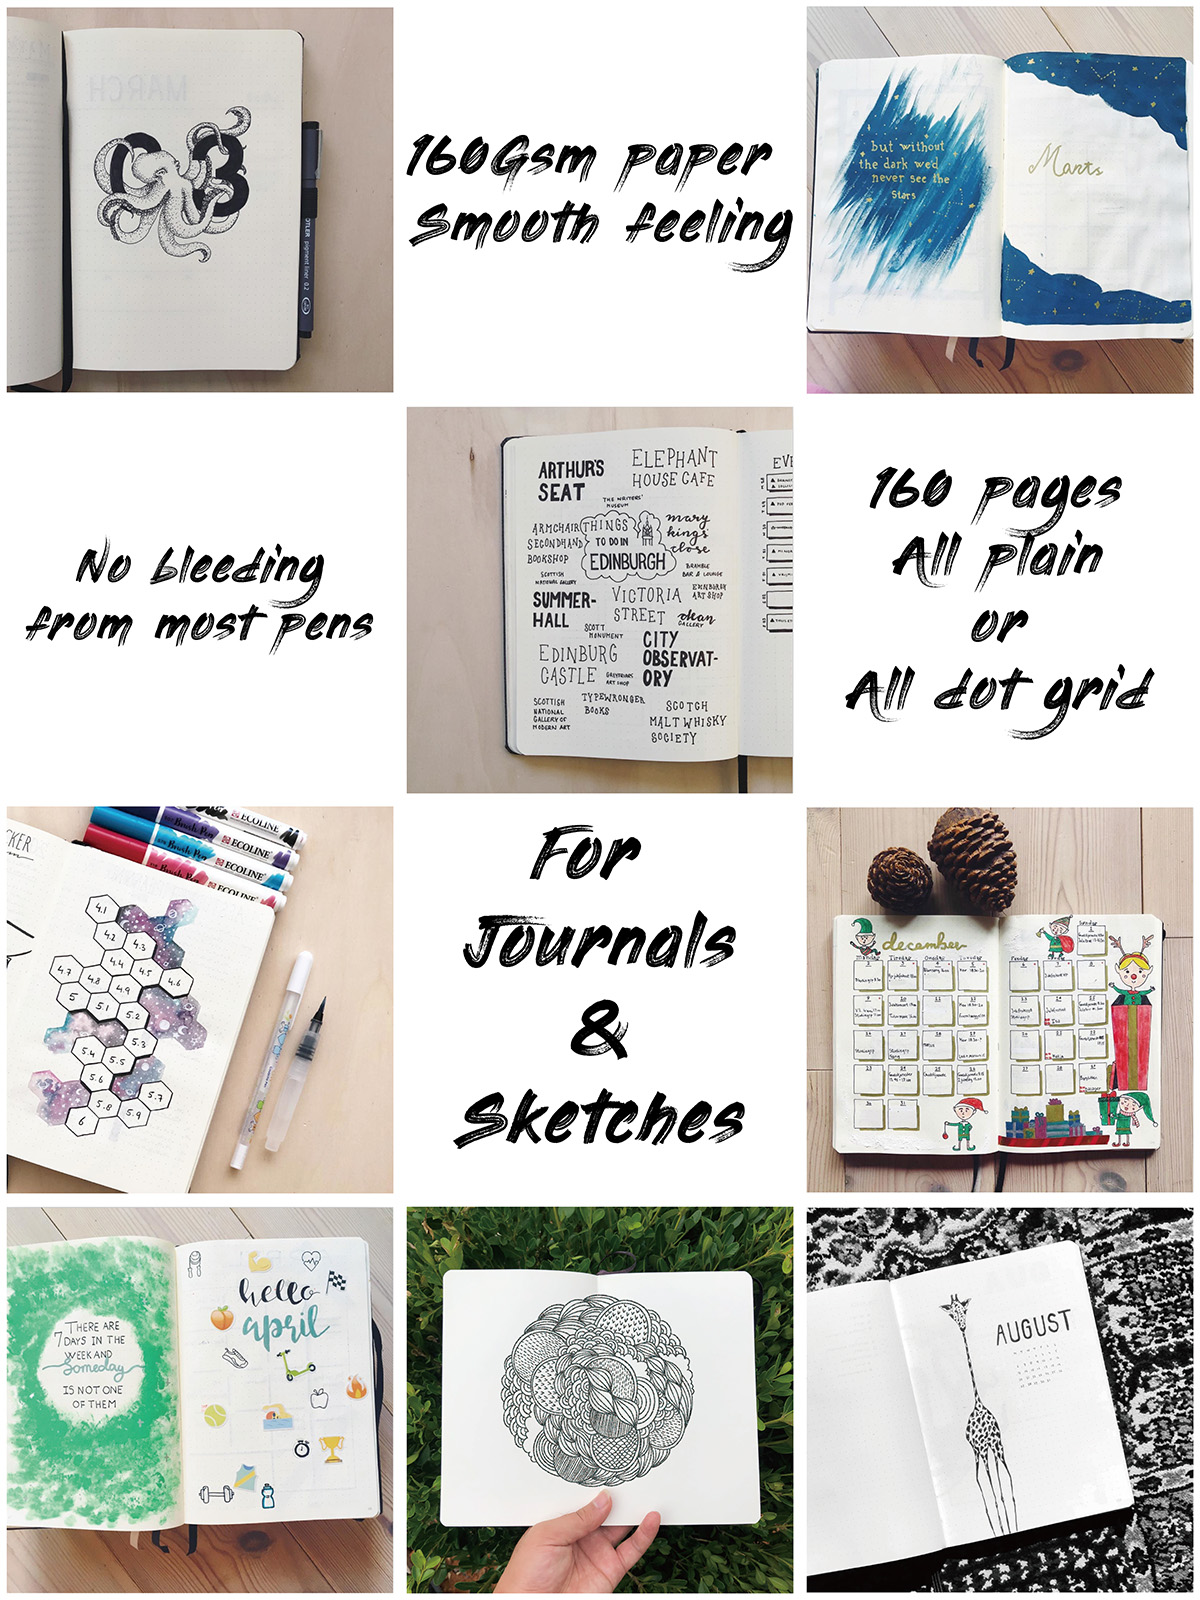 BUKE 5X5mm Journal Dot Gird Notebook 160 Pages, Size 5.7X8.2 Inch, 160Gsm Ultra Thick Bamboo Paper DIY Bujo Planner 3